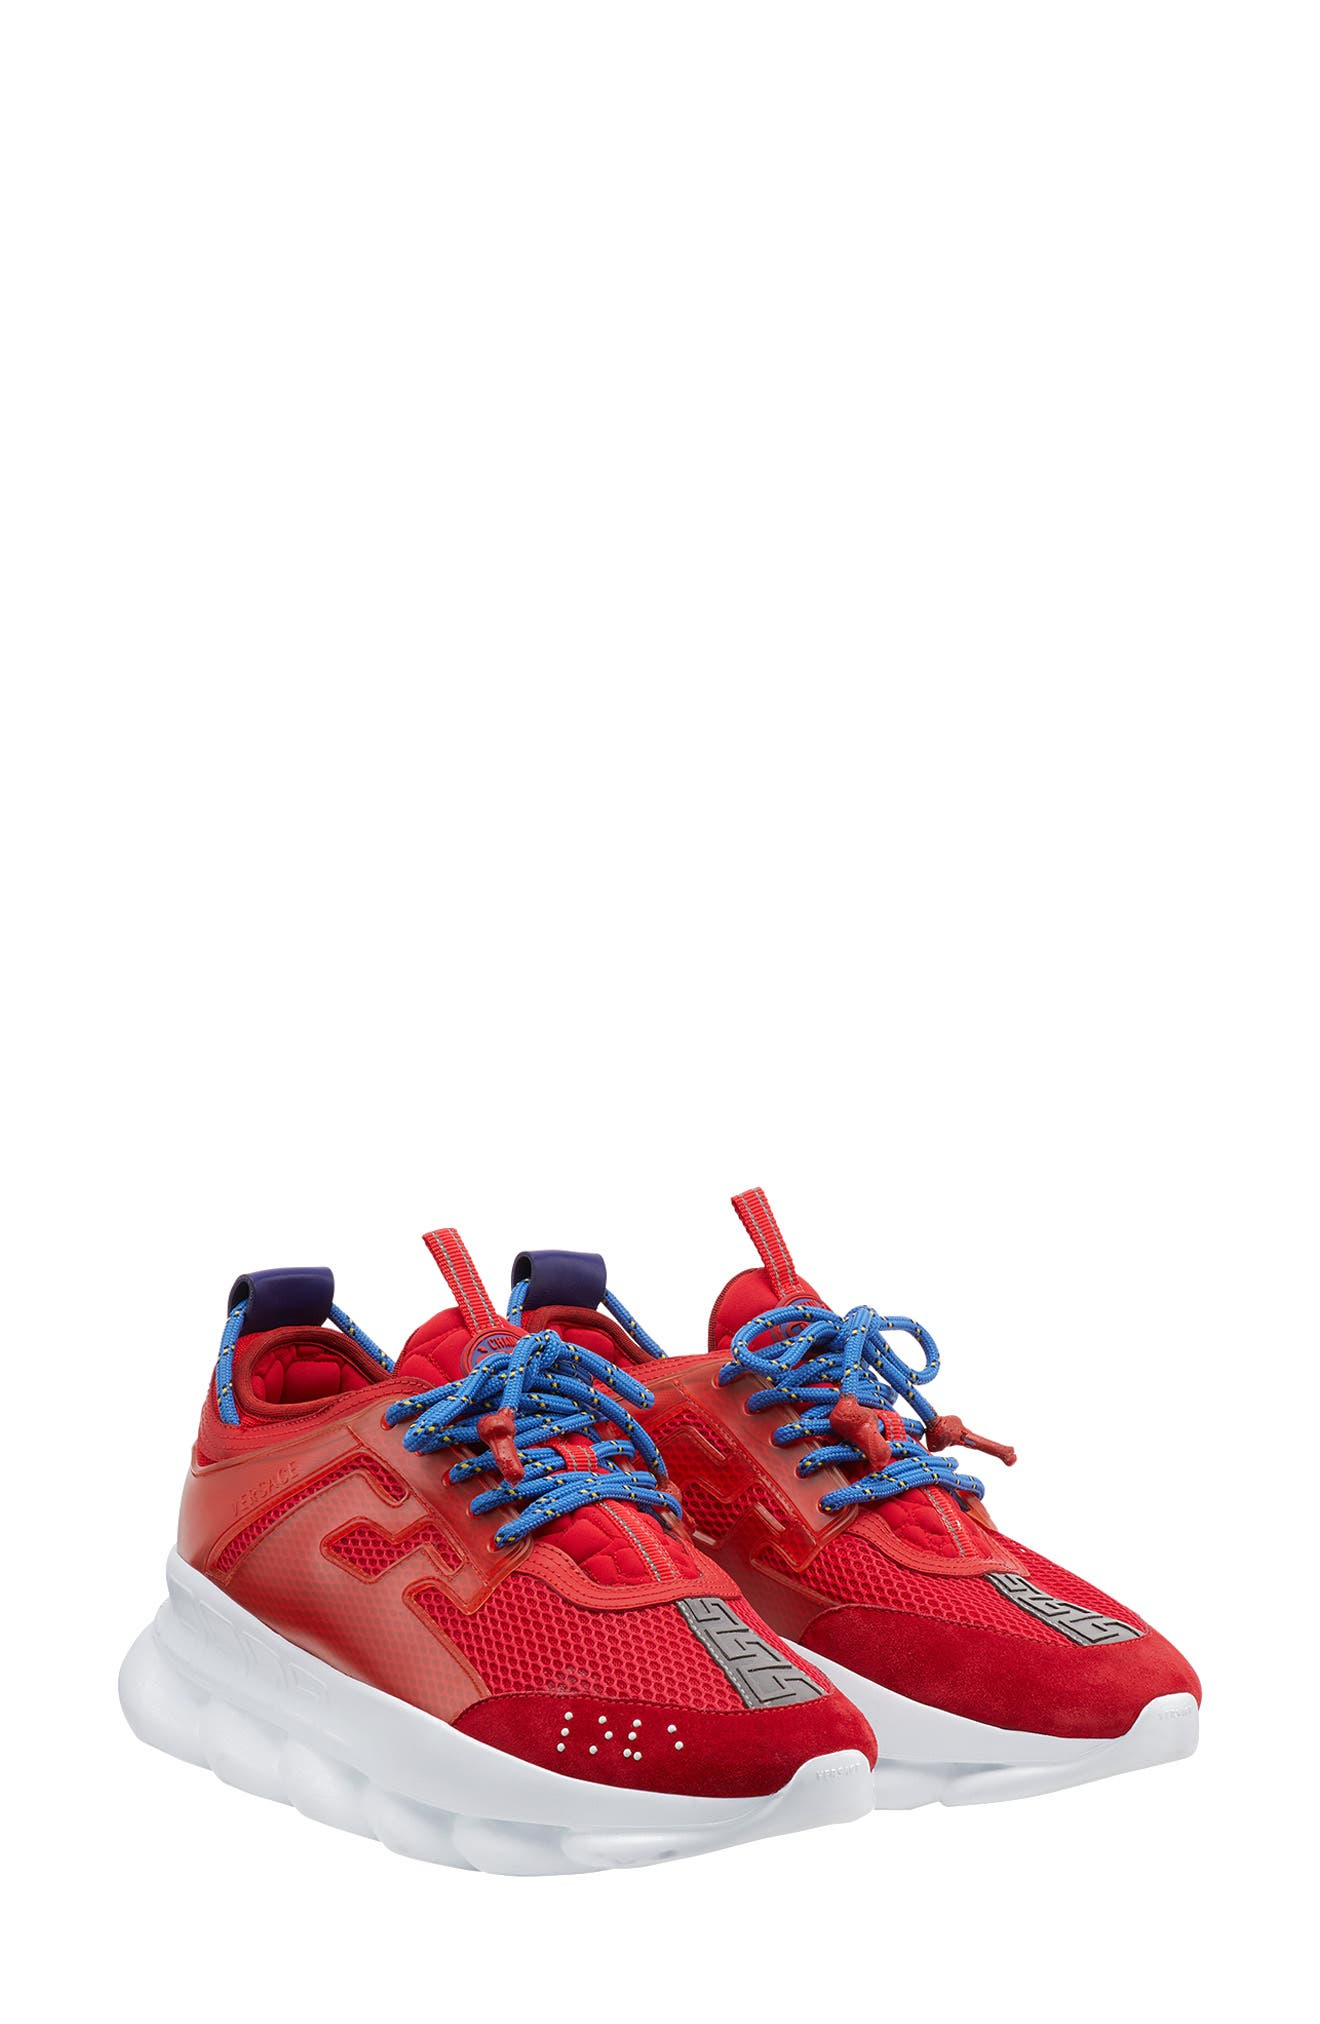 Versace Chain Reaction Sneaker,                         Main,                         color, RED